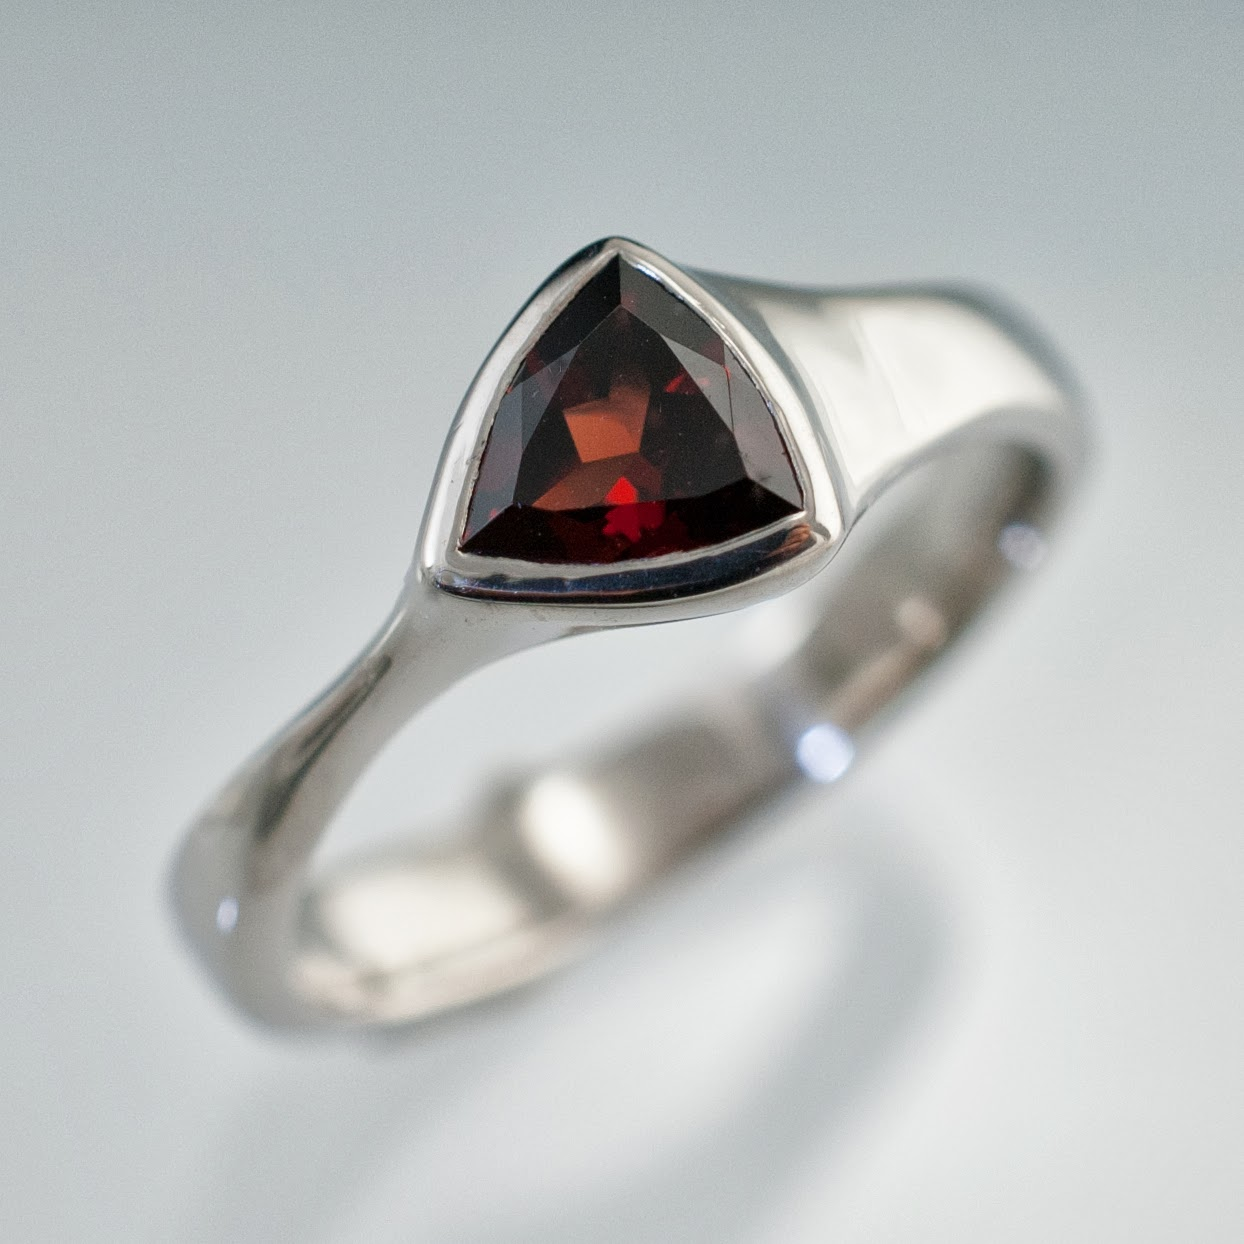 NODEFORM: Tetra Bridal Sets with Trillion Garnet and Lab Sapphire